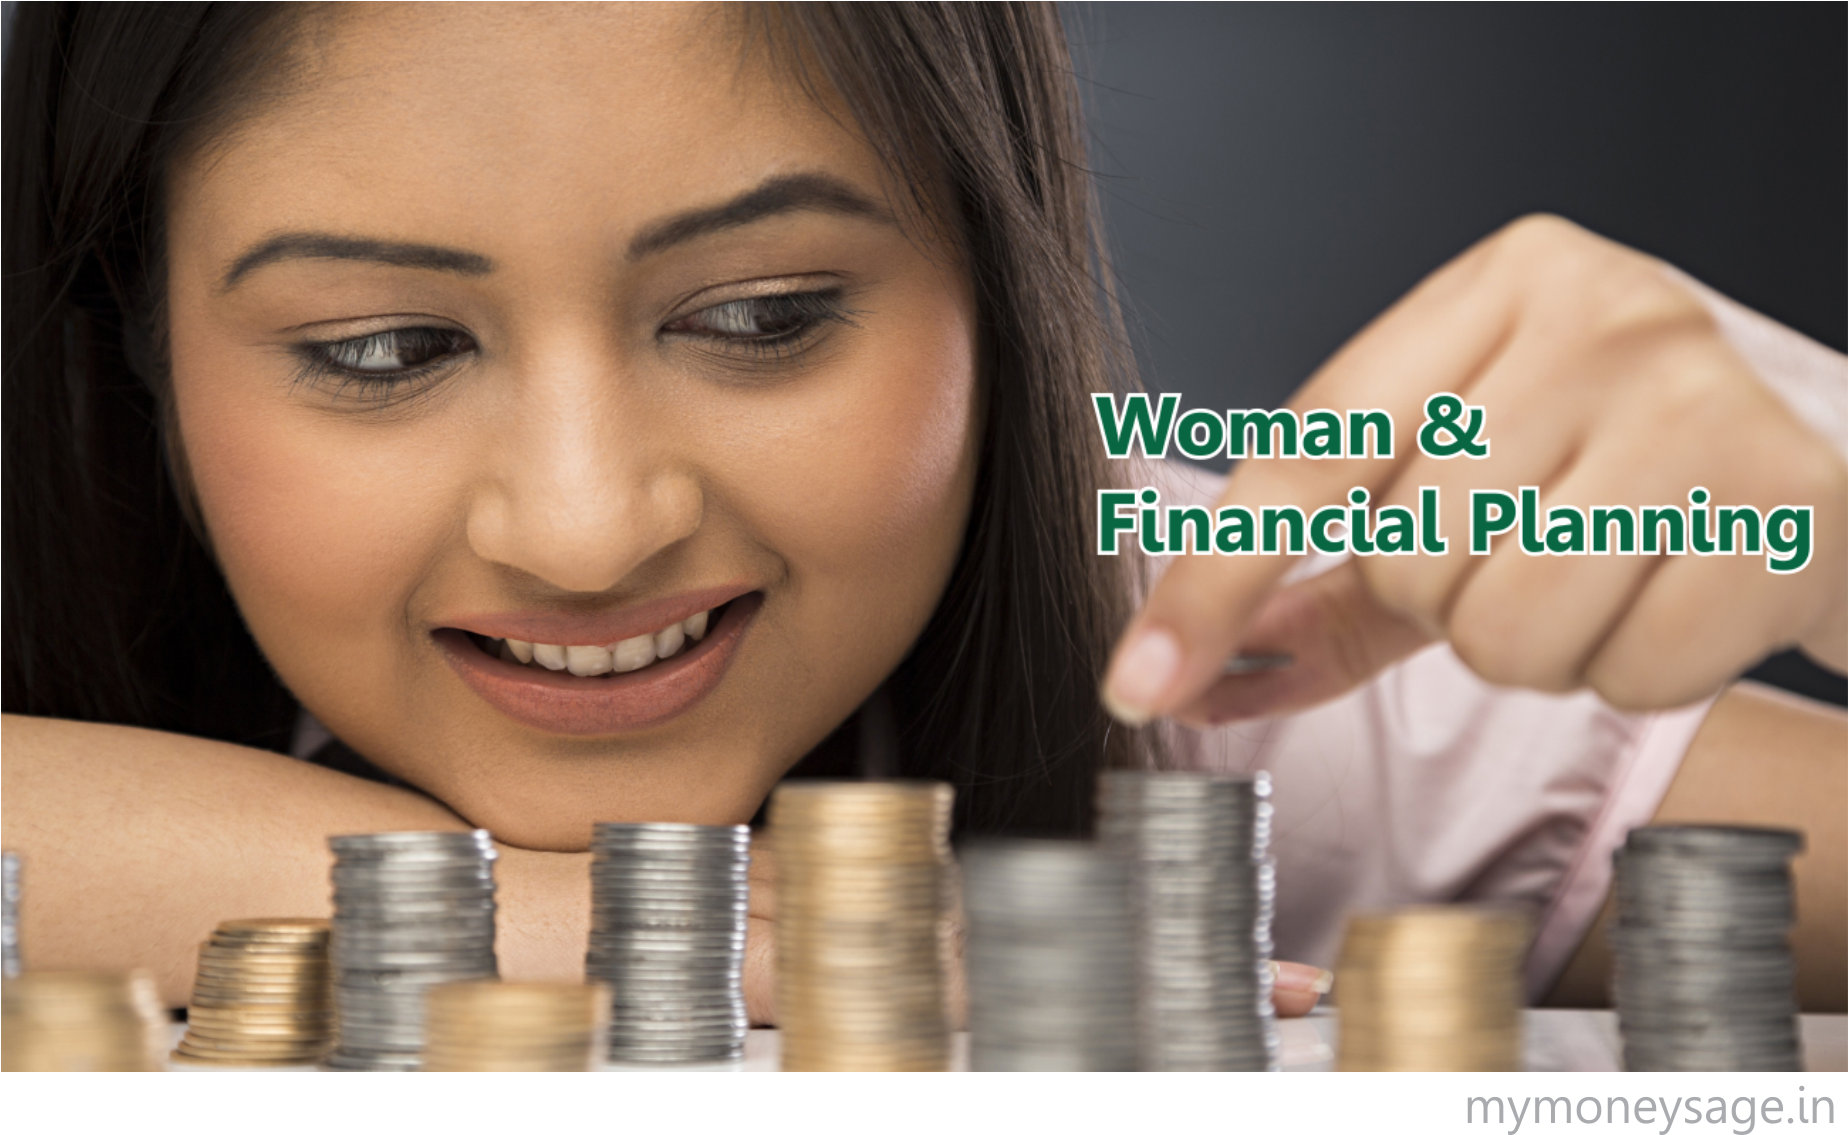 Financial Planning For Single Woman Mymoneysage Blog